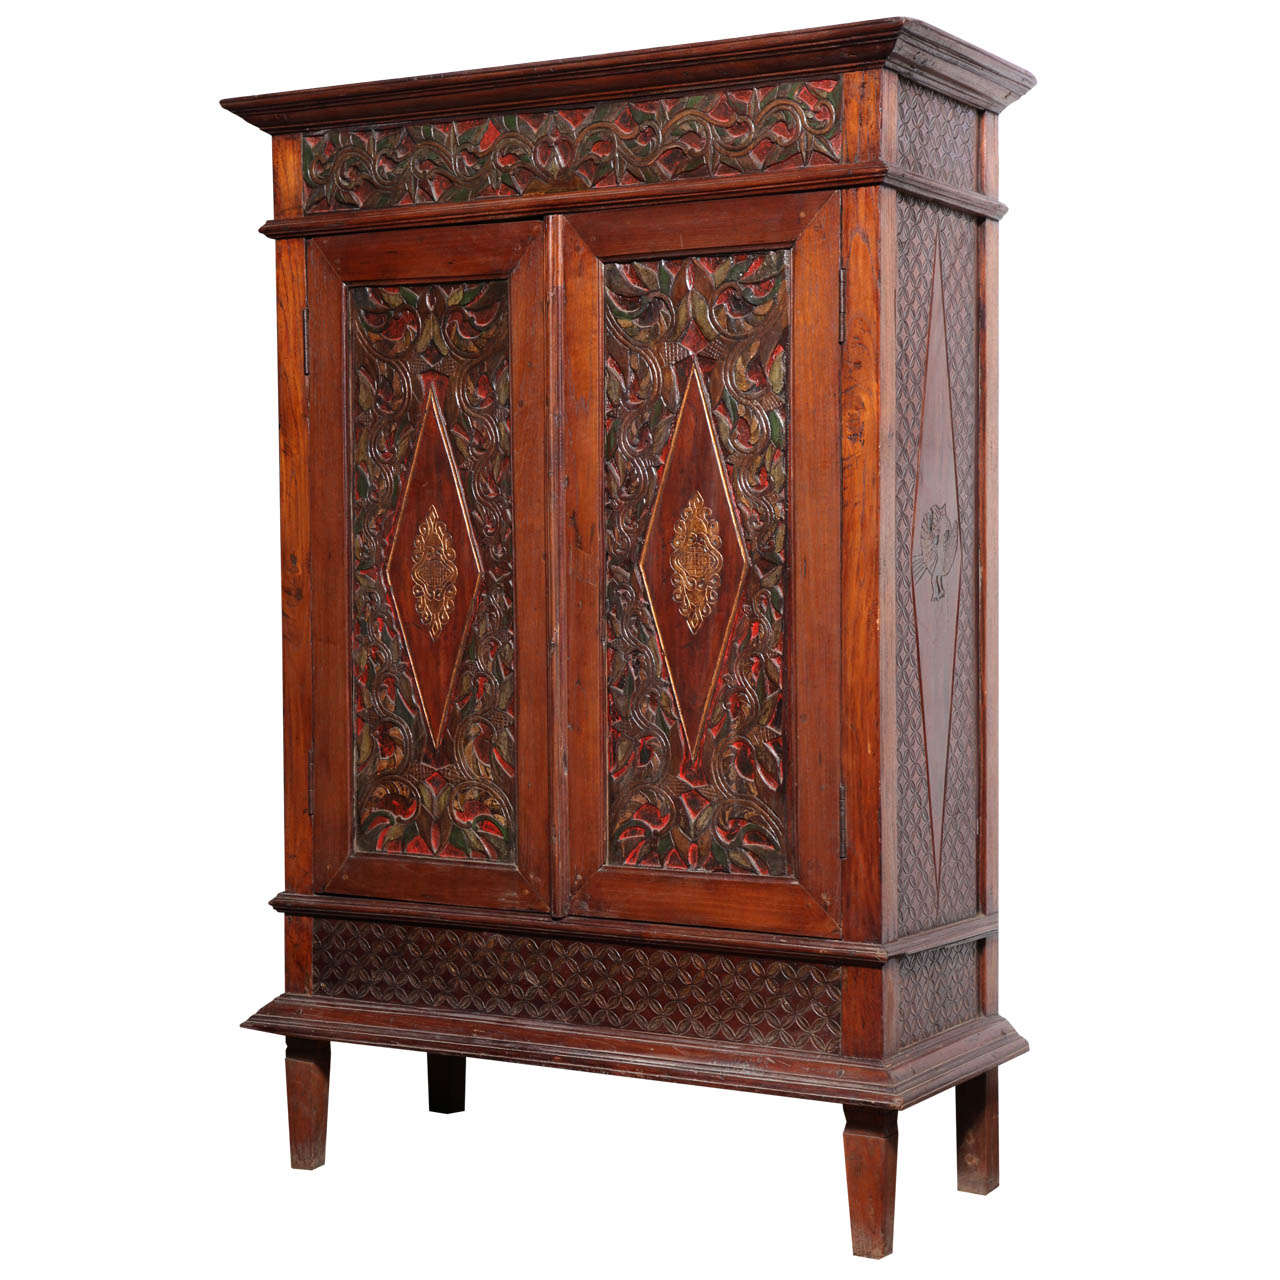 Ordinaire Antique Javanese Teakwood Cabinet With Detailed Carvings, Early 20th  Century For Sale